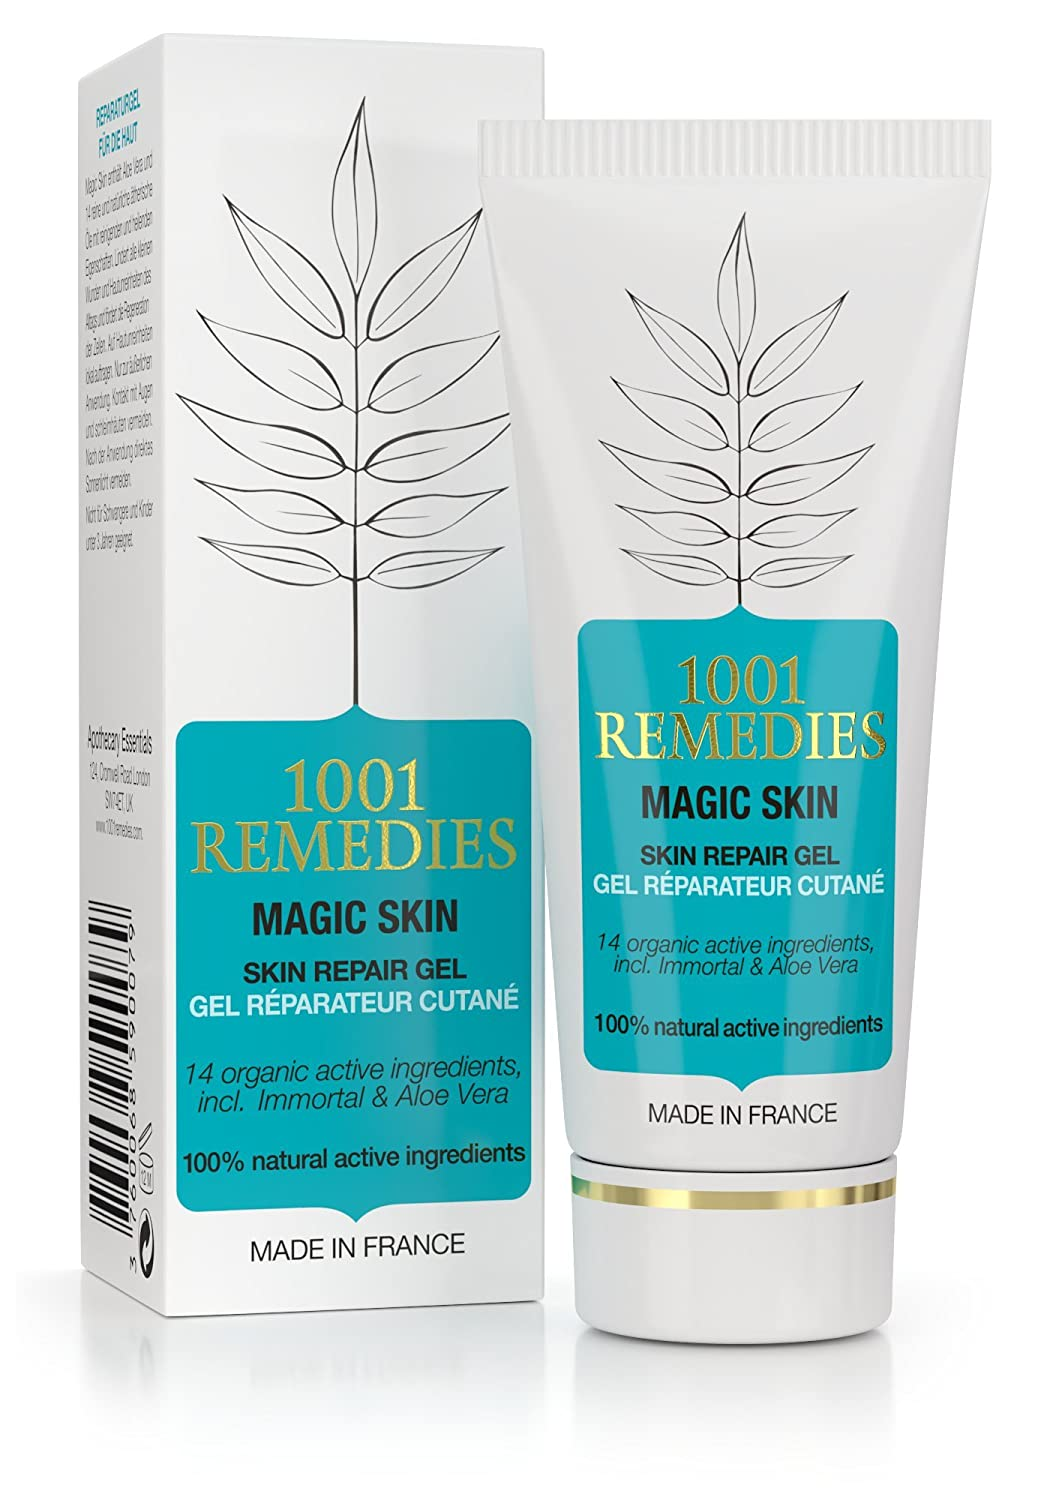 1001 Remedies Acne Spot Treatment& Dark Spot Corrector For Face - Acne Scar Remover Cream For Clean and Clear Skin - Tea Tree Oil Moisturizer for Spot, Acne, Rosacea Prone Skin - Adult, Teens